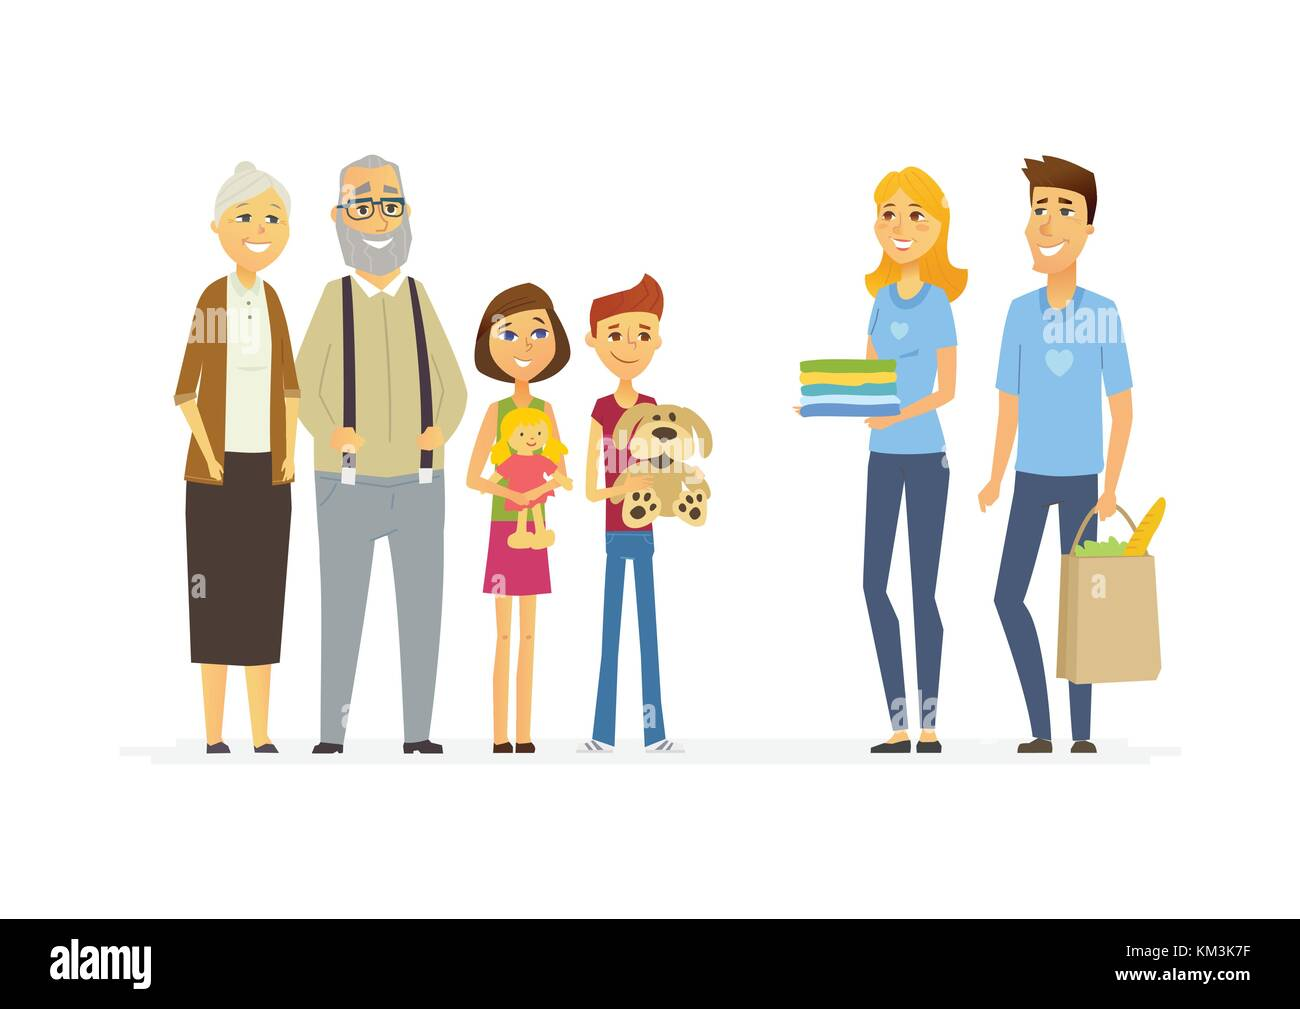 Volunteers help children and seniors - cartoon people characters isolated illustration on white background. Two - Stock Vector